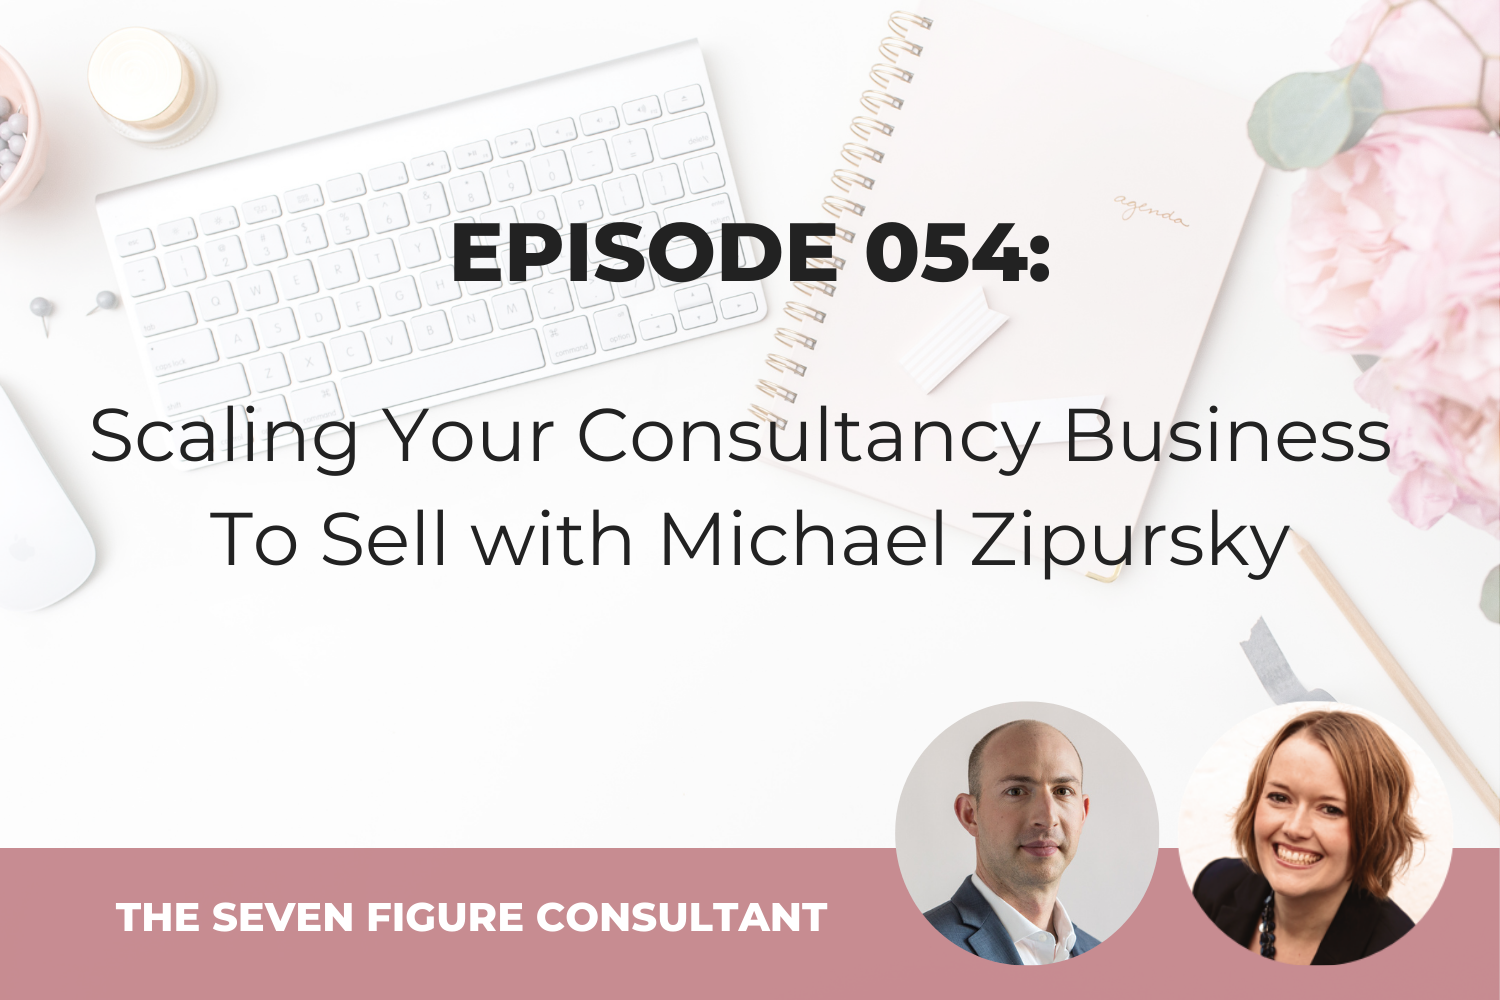 Episode 054: Scaling Your Consultancy Business To Sell